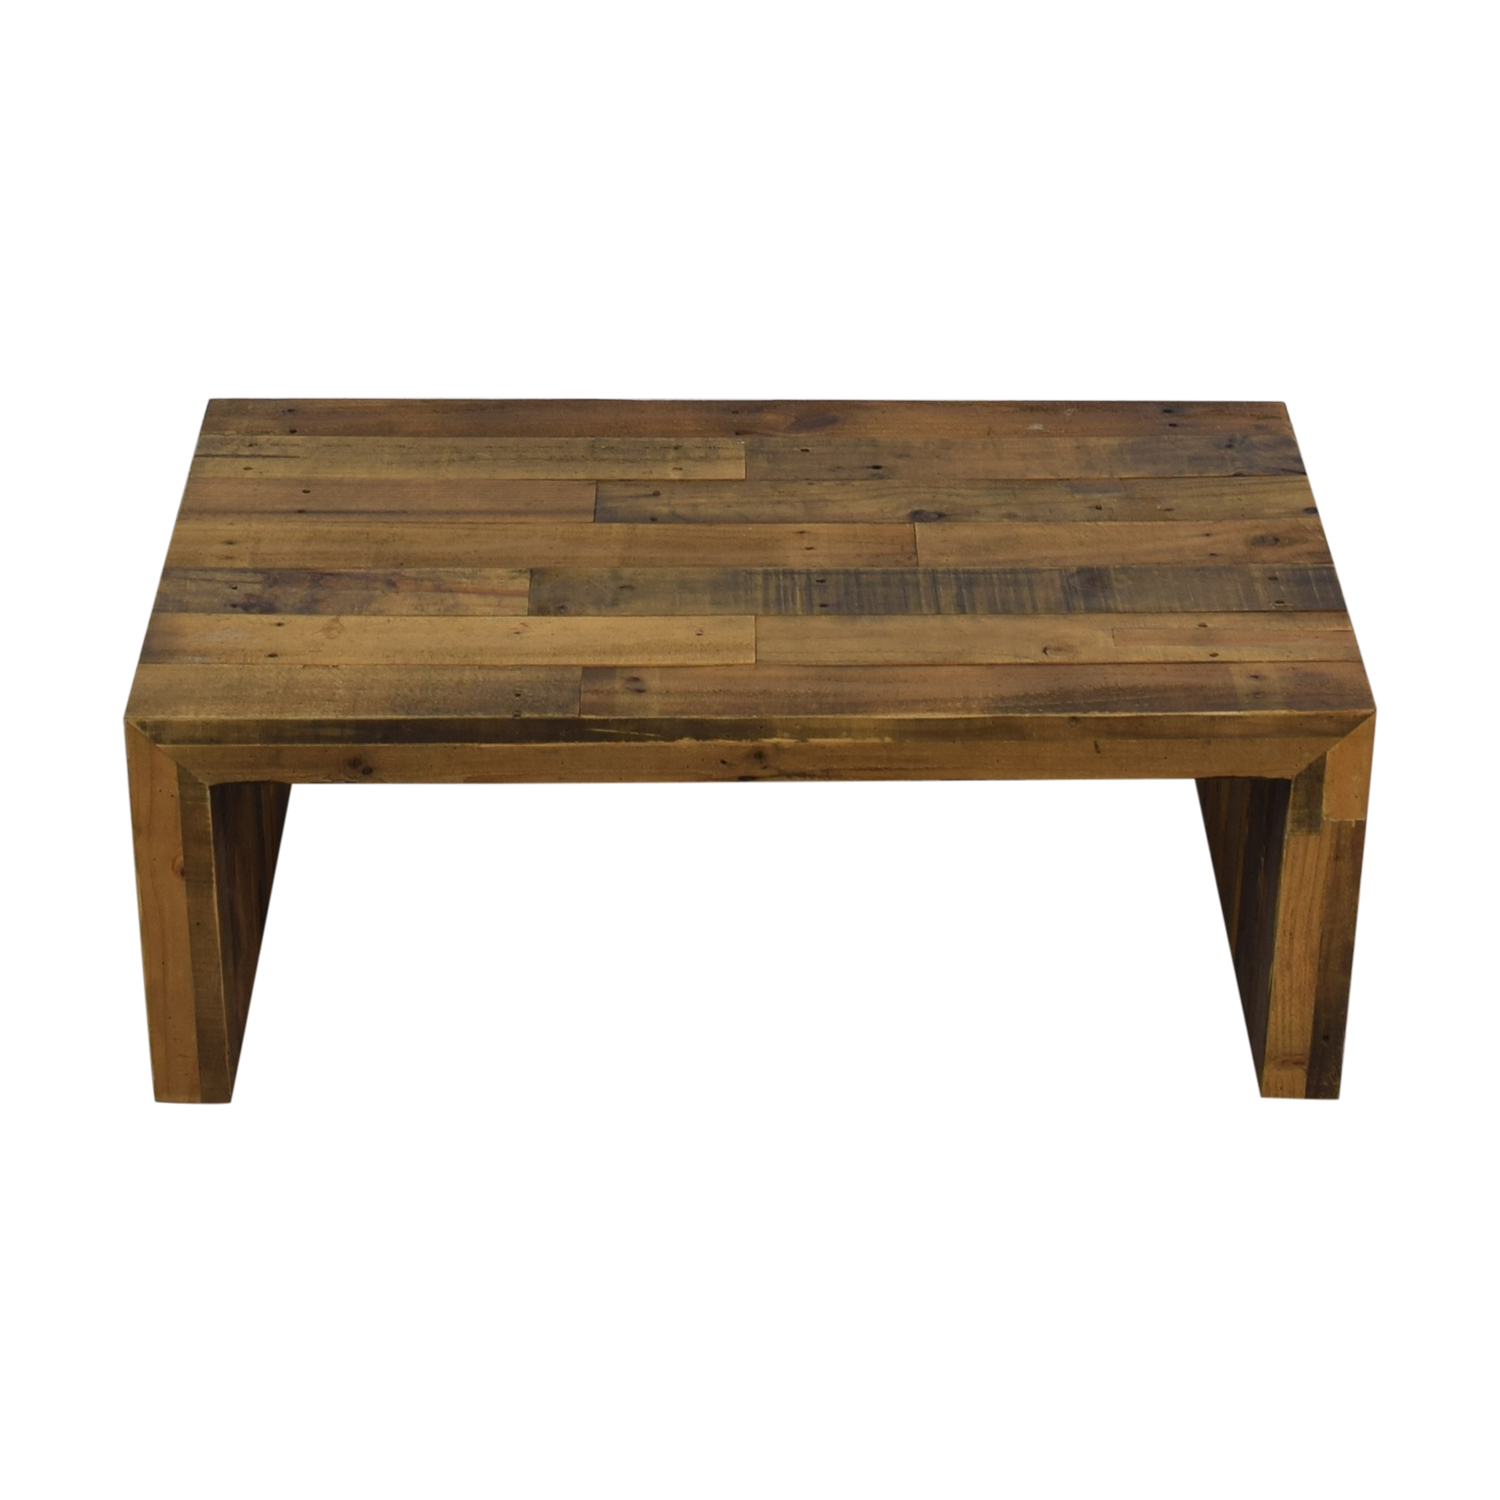 West Elm Emmerson Reclaimed Wood Coffee Table Nj